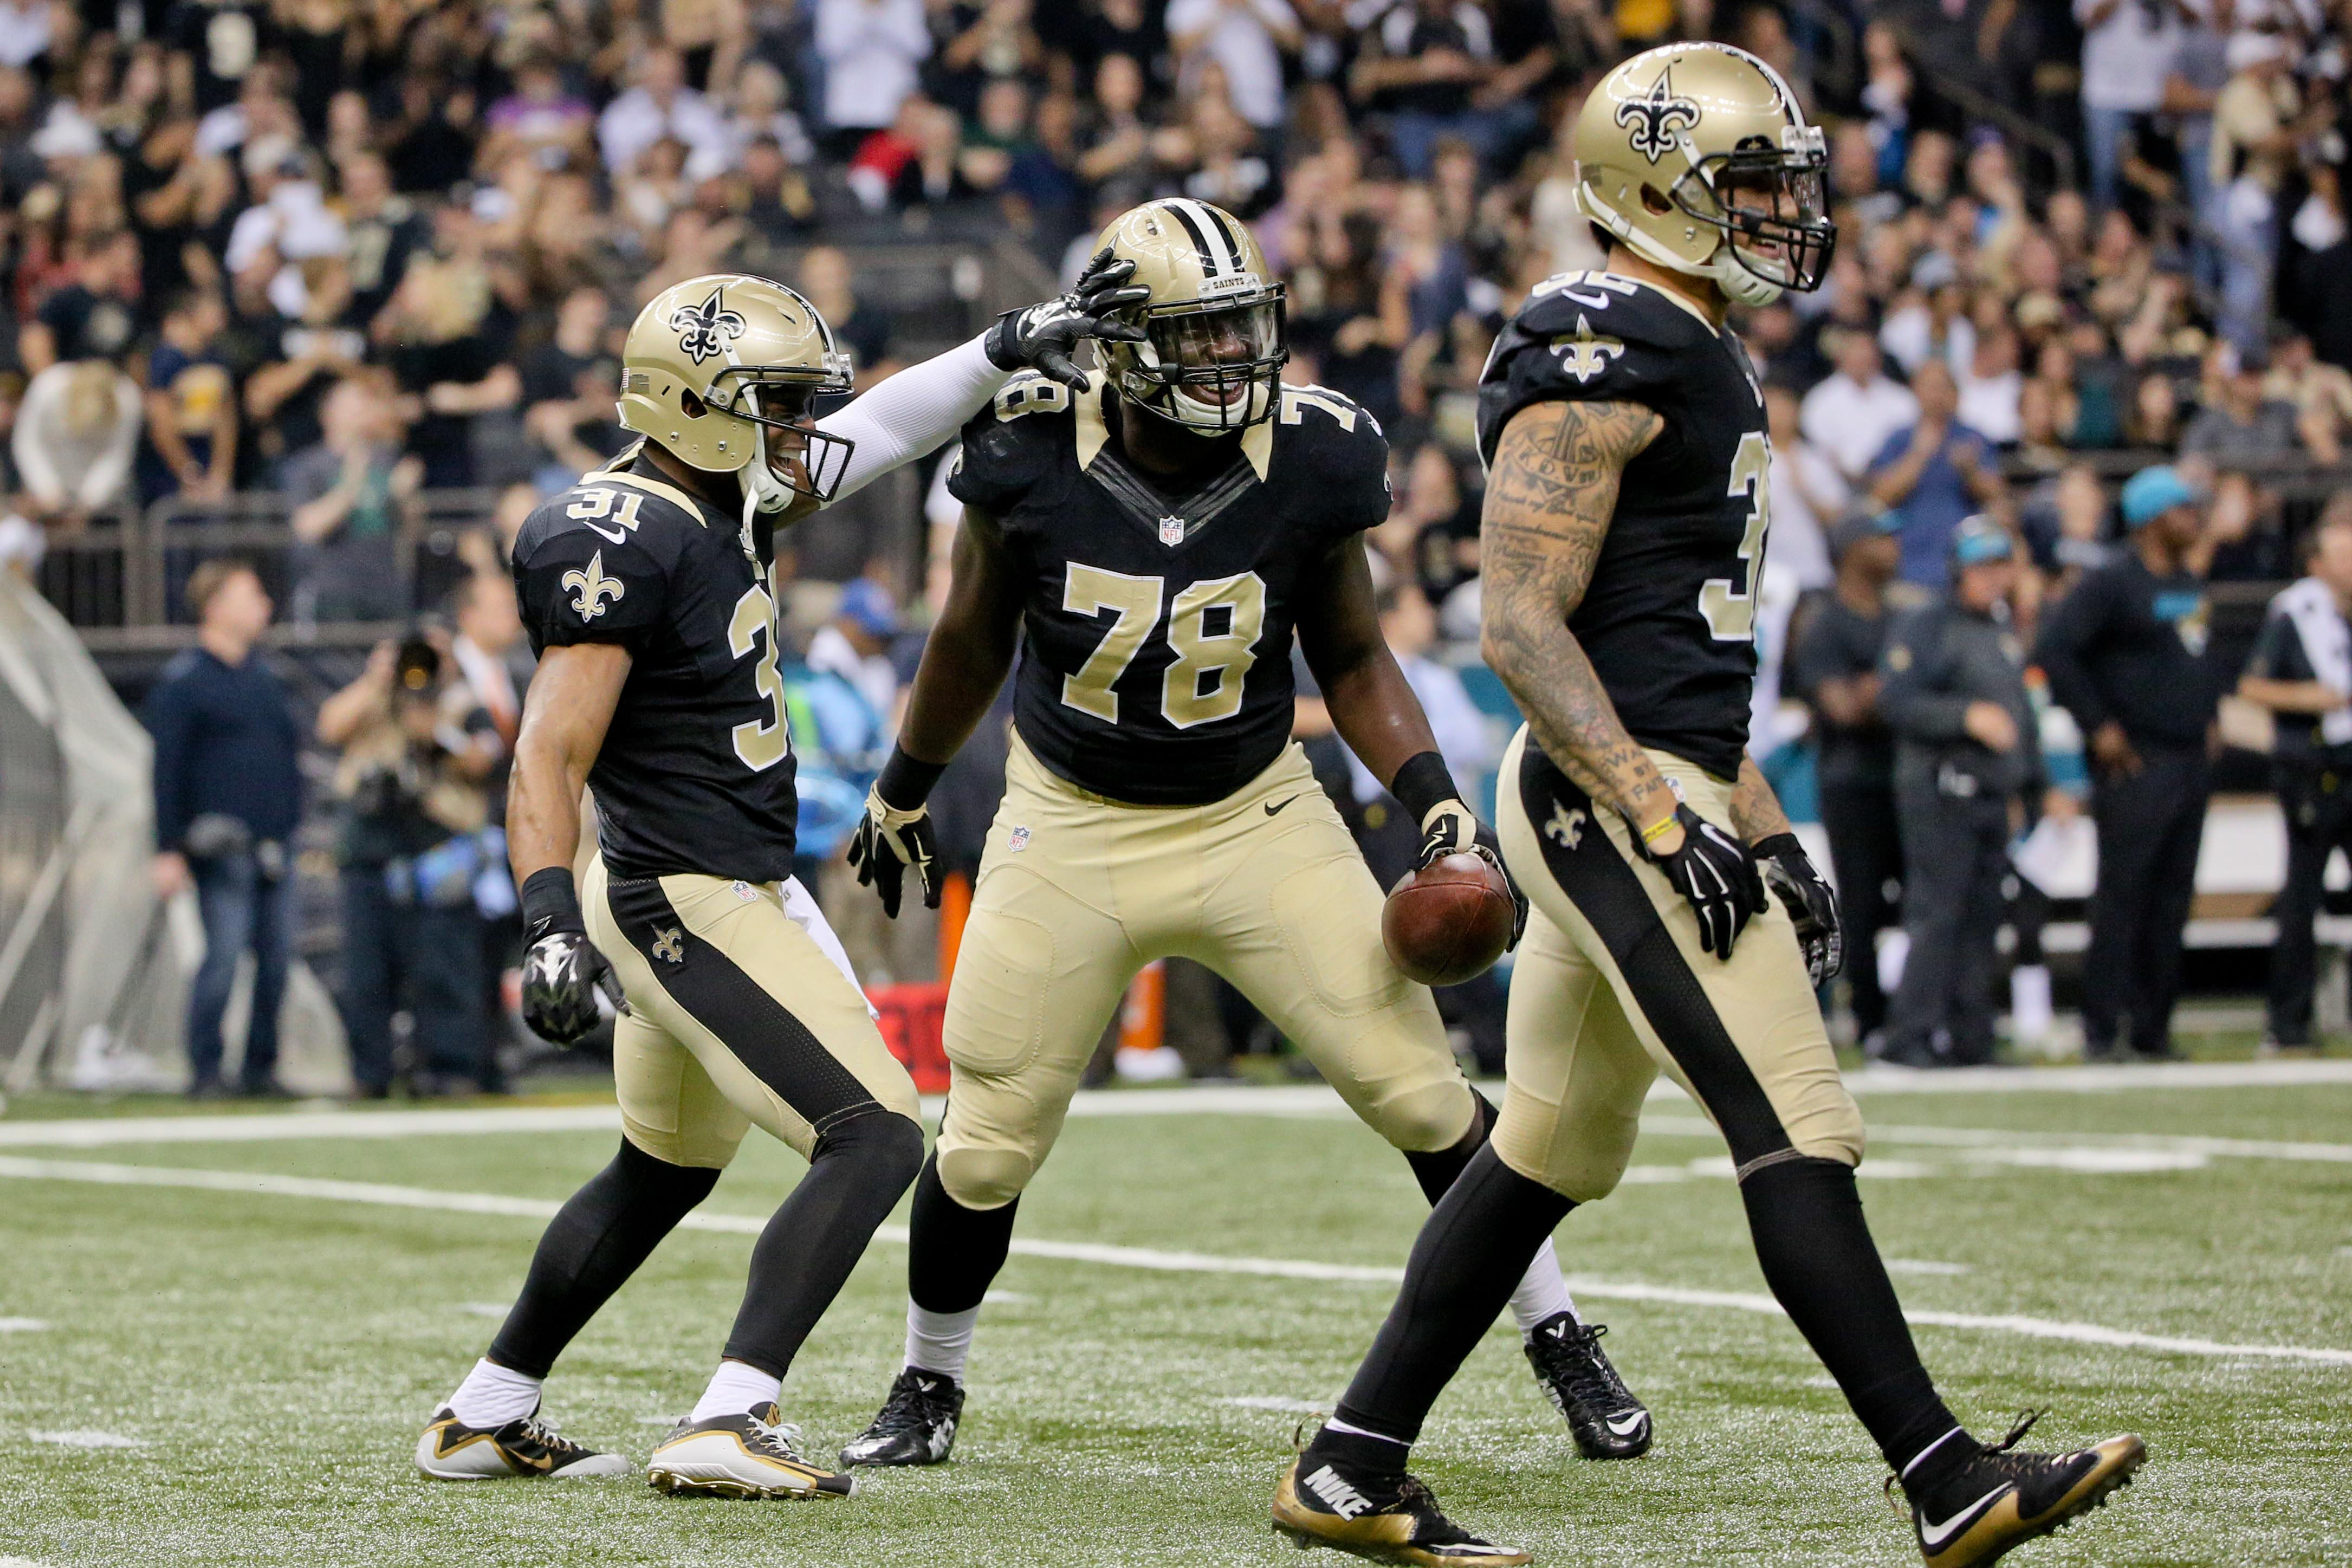 9020613-nfl-jacksonville-jaguars-at-new-orleans-saints